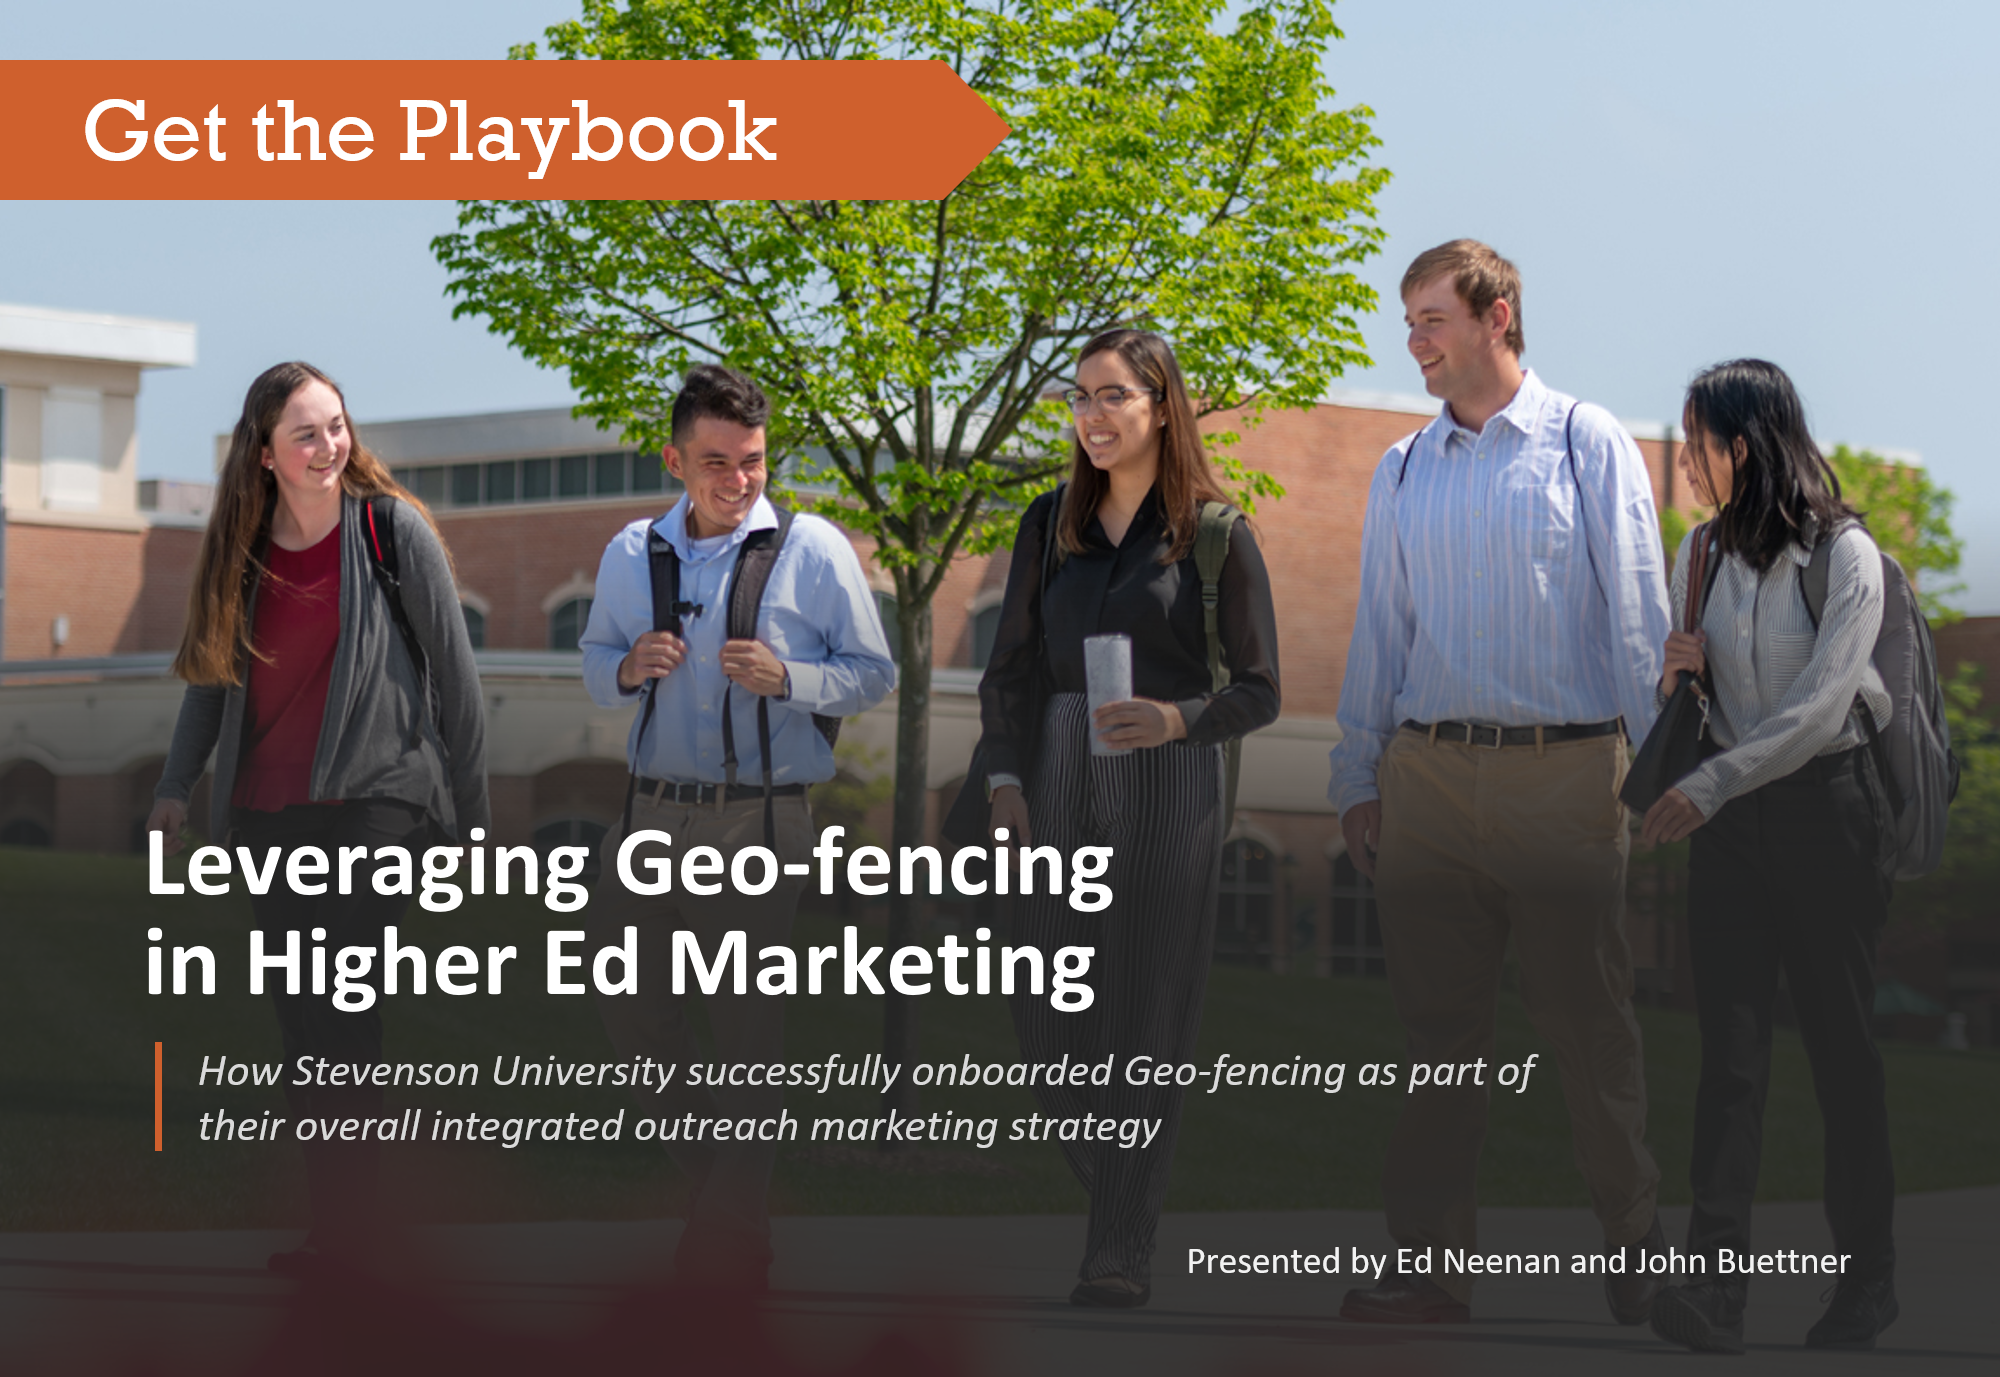 undergraduates walking along Stevenson University campus with superimposed messaging about the SAI Digital geo-fencing presentation delivered at eduWeb 2019